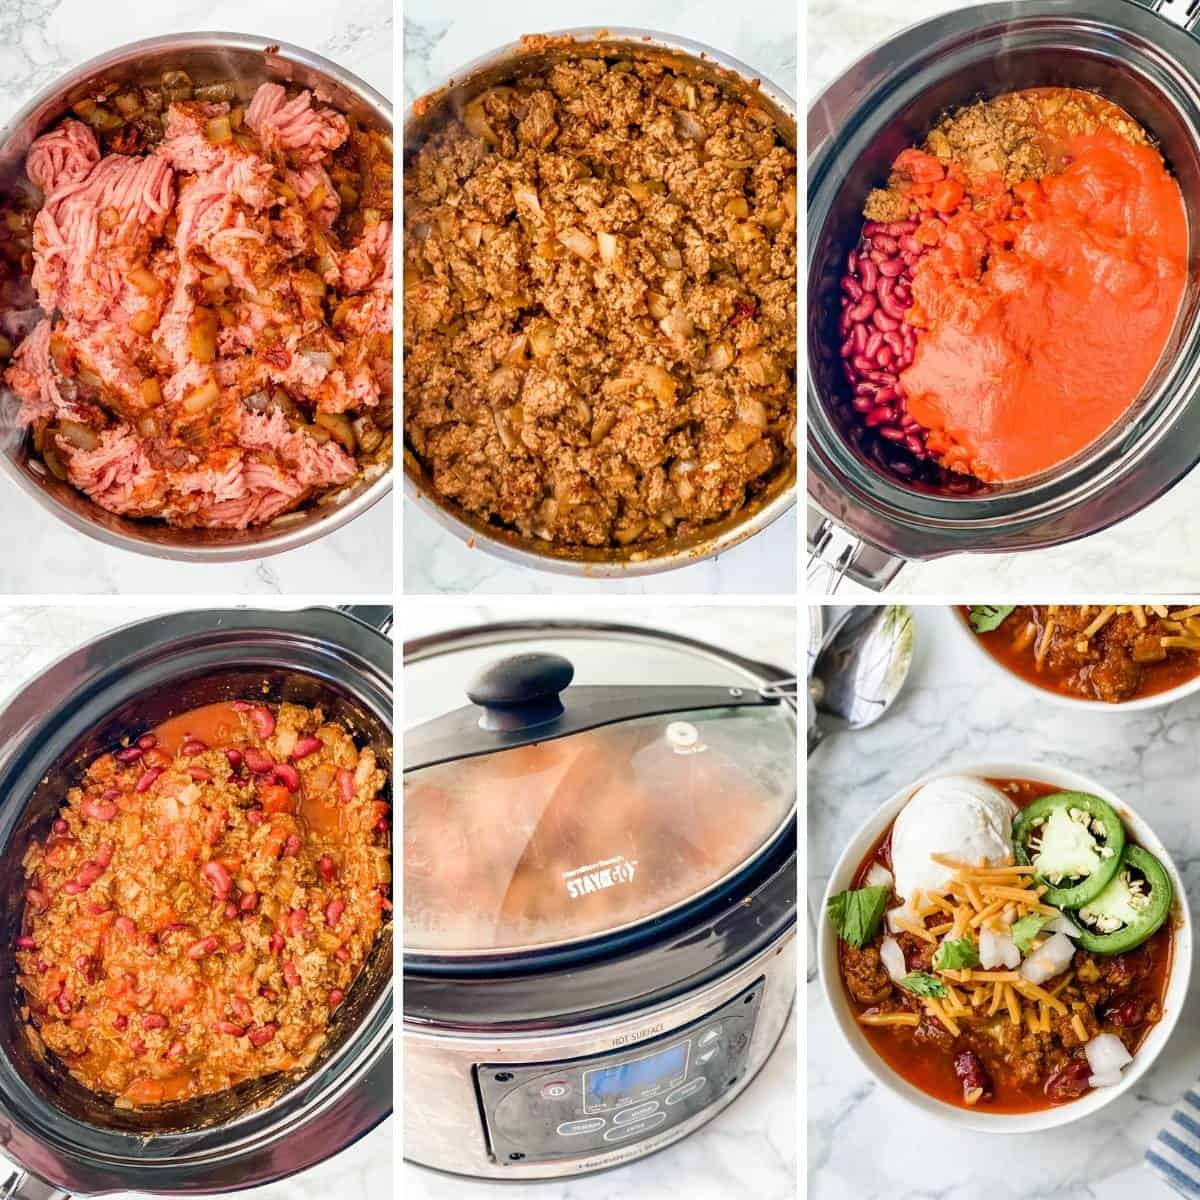 another collage showing how to make ground turkey chili in the crockpot.